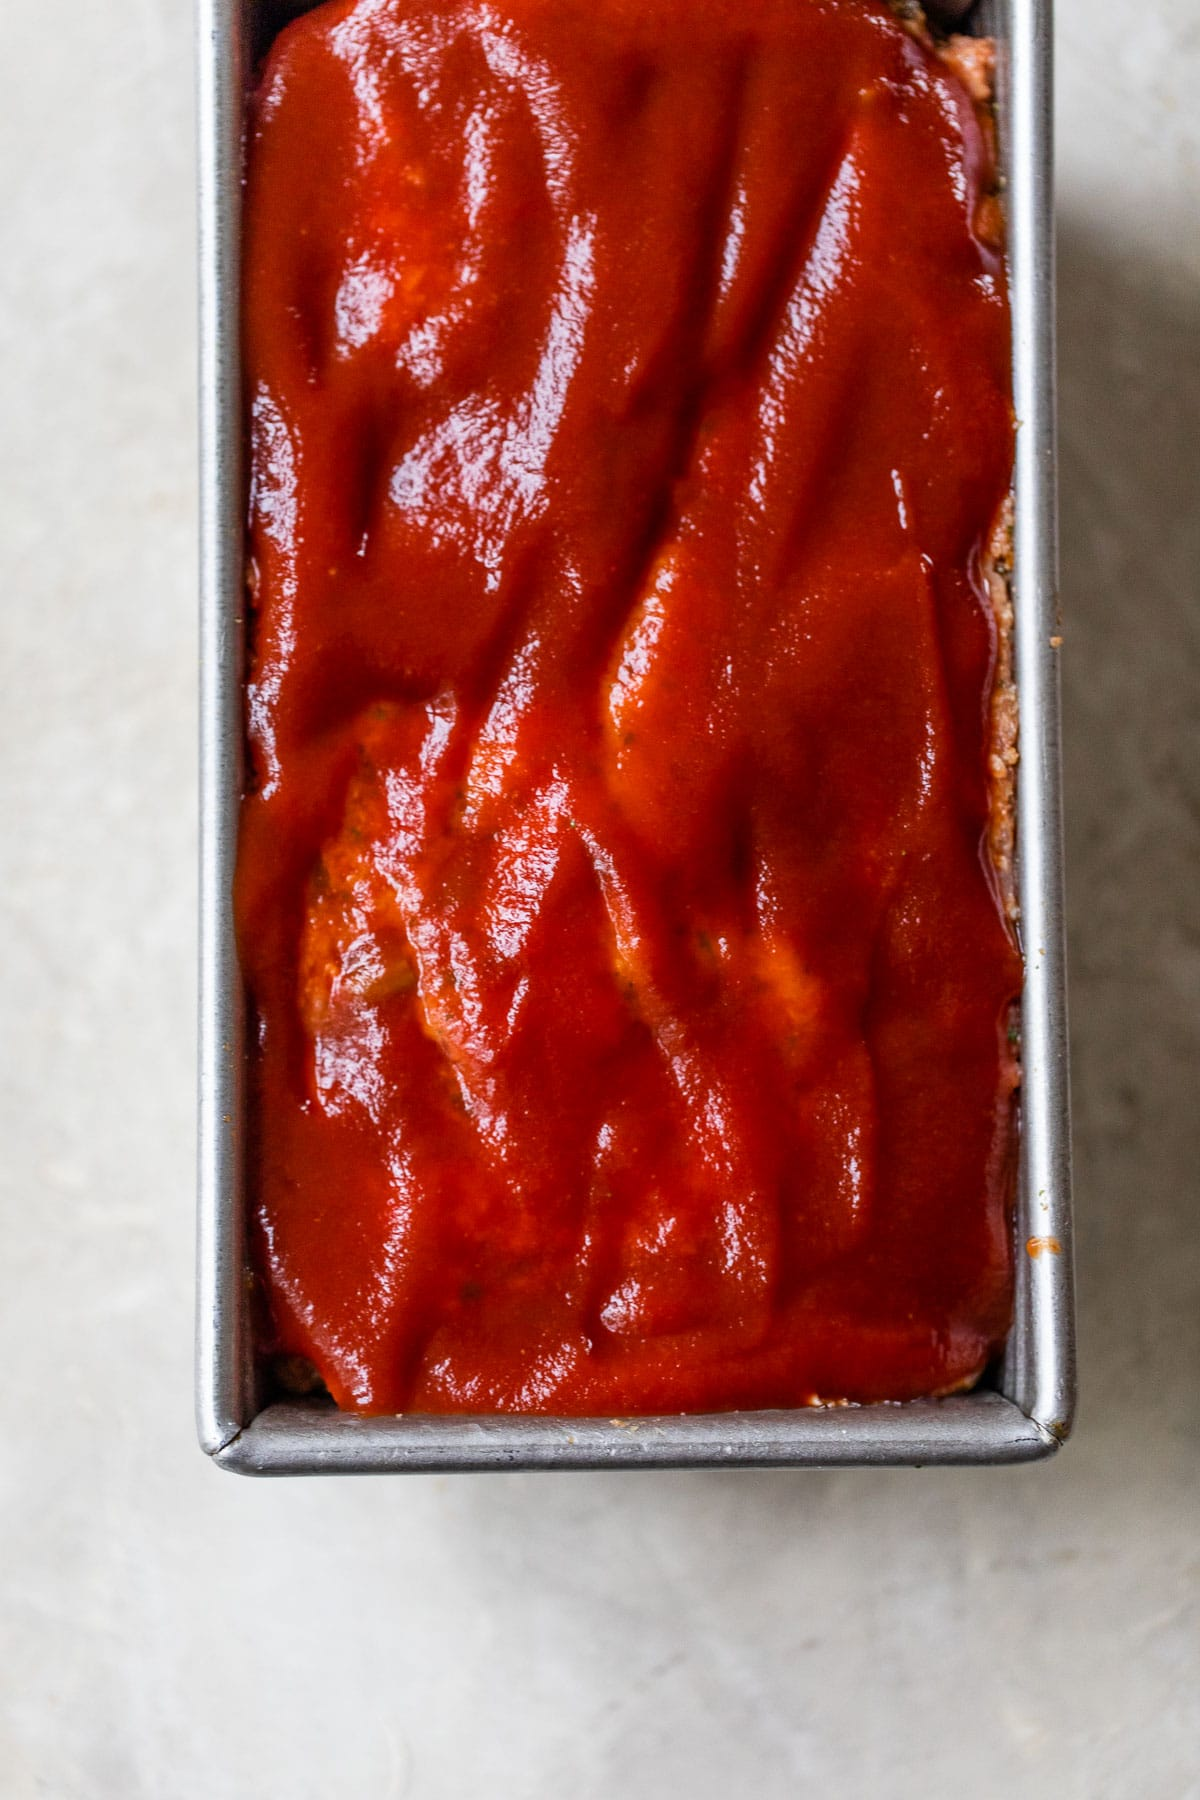 raw meatloaf with a ketchup glaze in a loaf pan